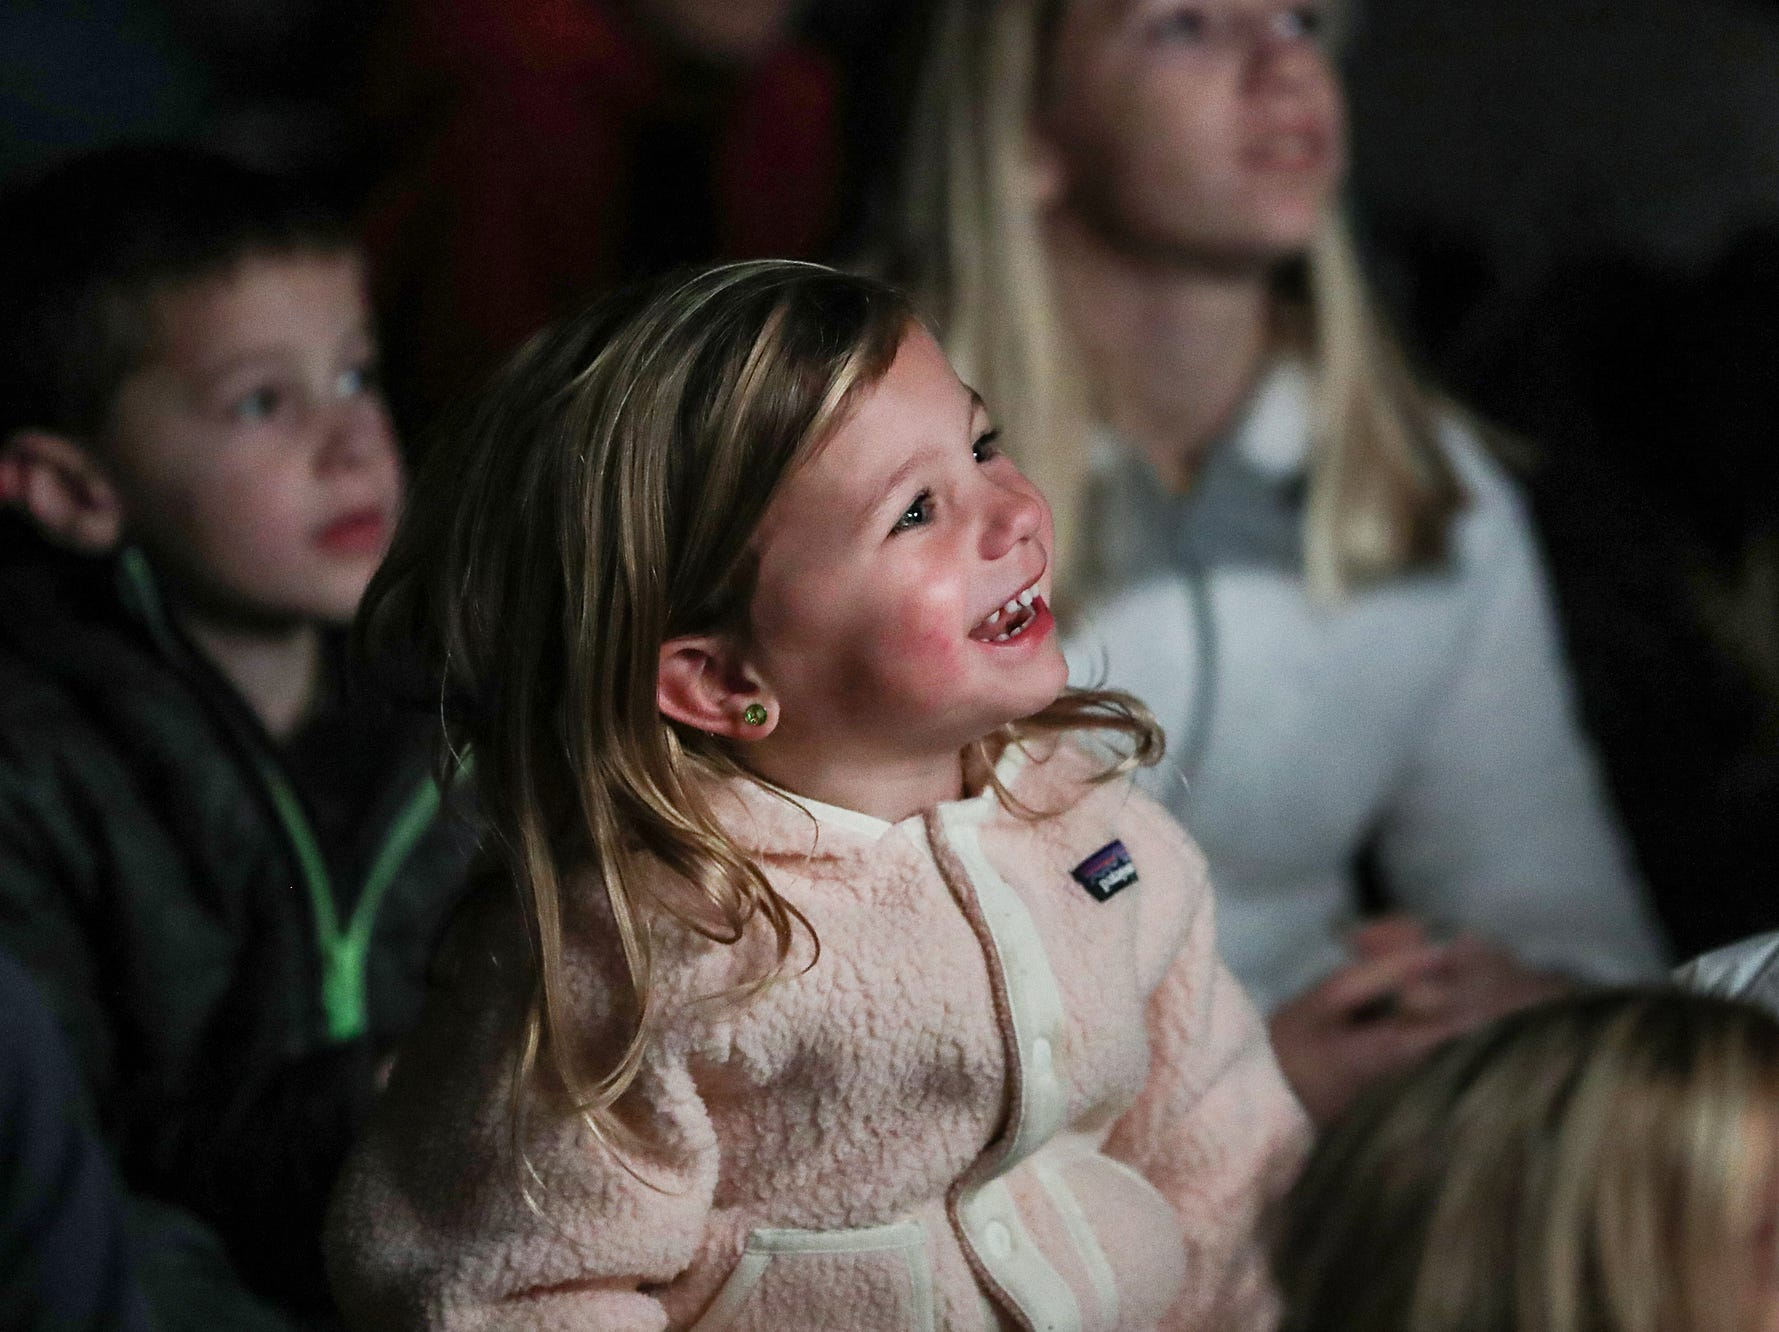 Children laugh at a marionette show by Stevens Puppets on opening night of the annual Headless Horseman Halloween festival at Conner Prairie in Fishers, Ind., Thursday, Oct. 11, 2018. The festival is held from 6 to 9 p.m. every Thursday through Sunday, ending Oct. 28, 2018.